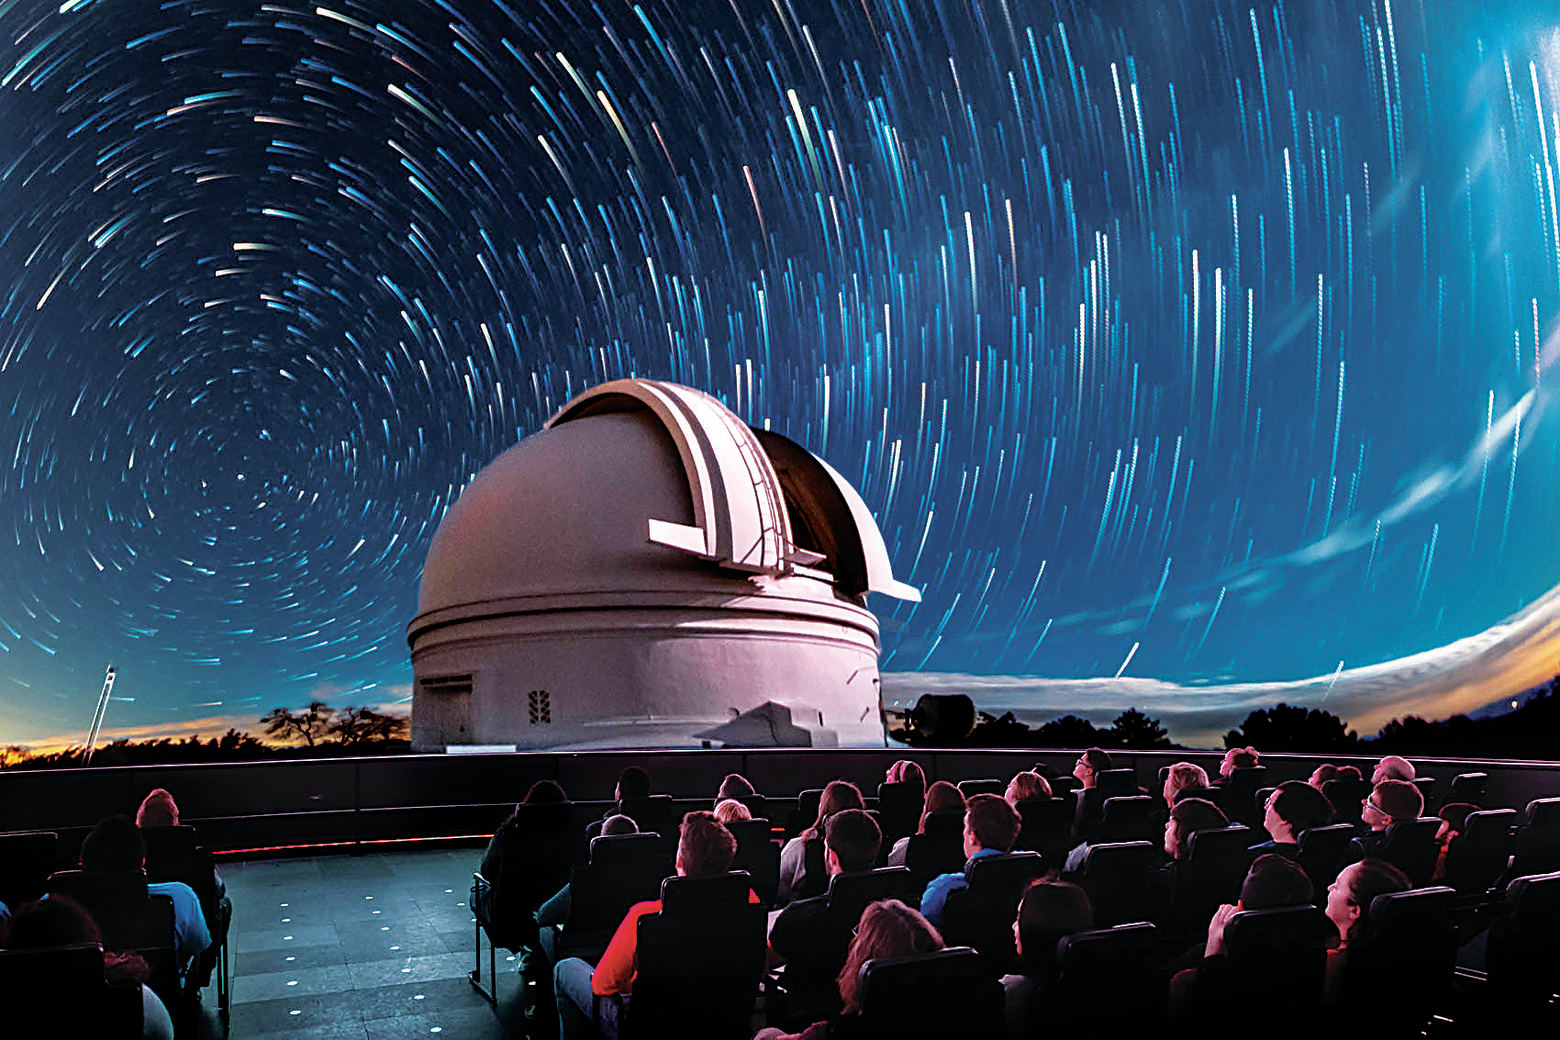 Coolest Observatories And Planetariums In The Us Futurism